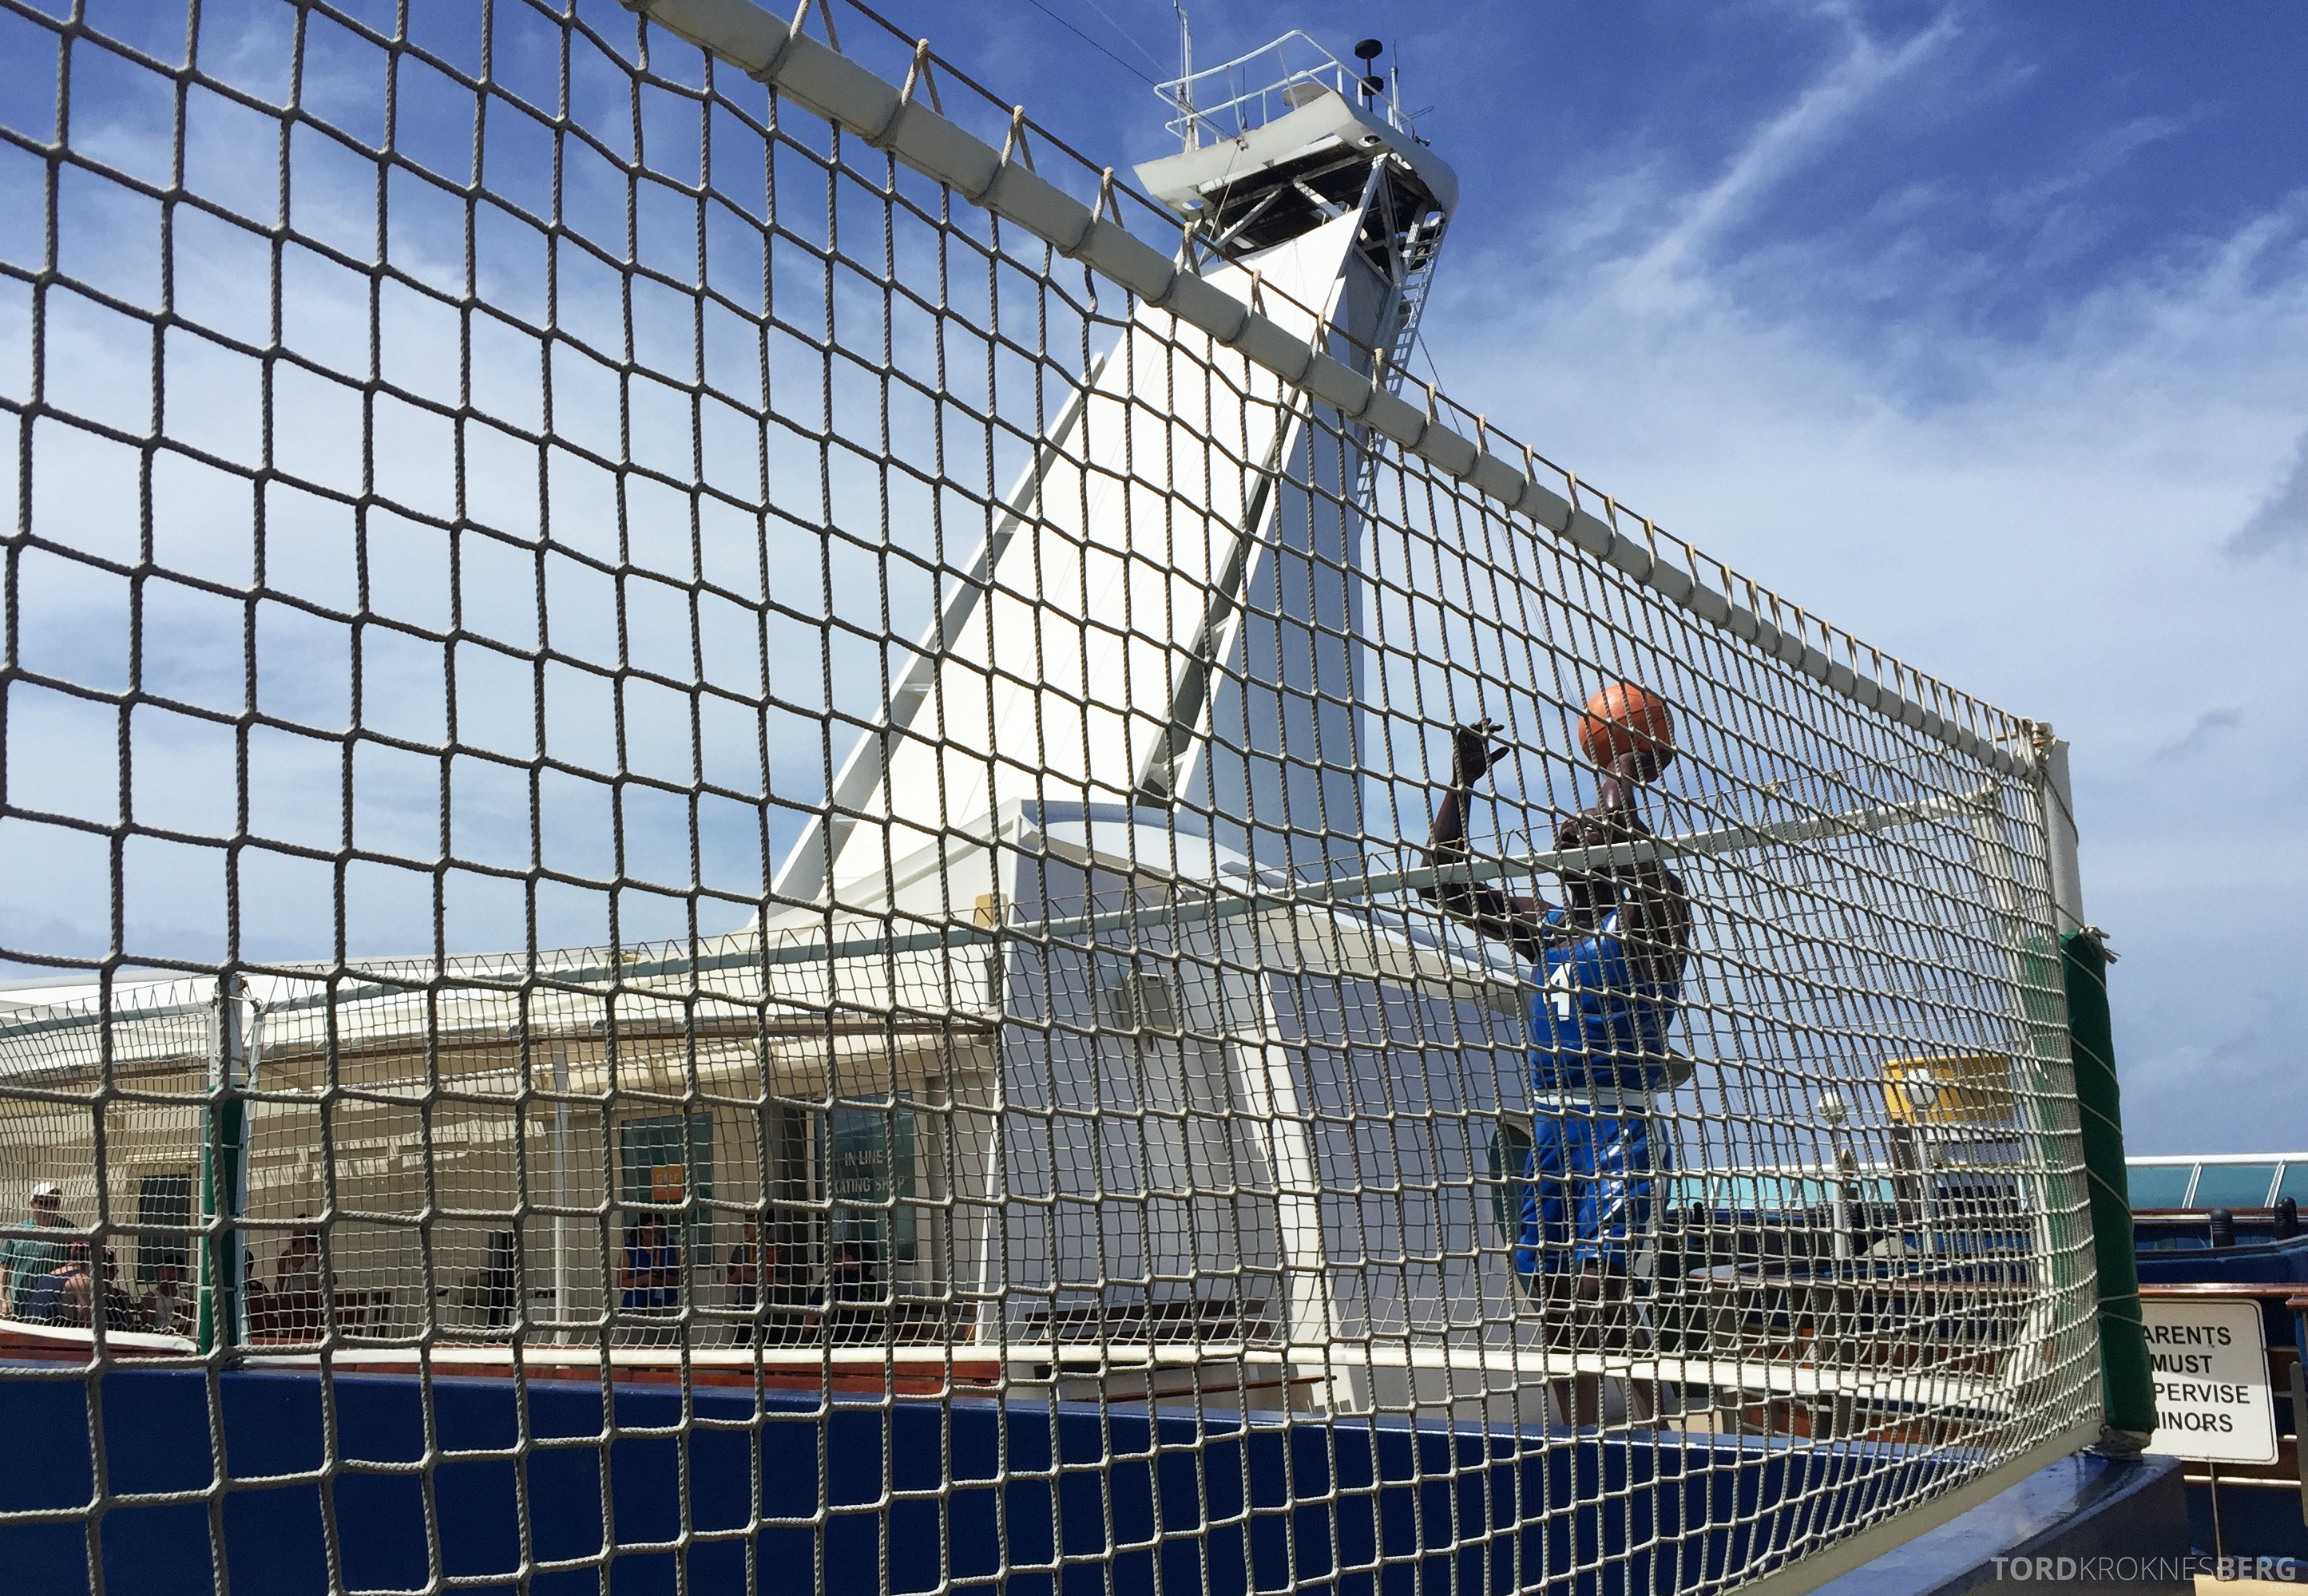 Royal Caribbean Adventure of the Seas basketball